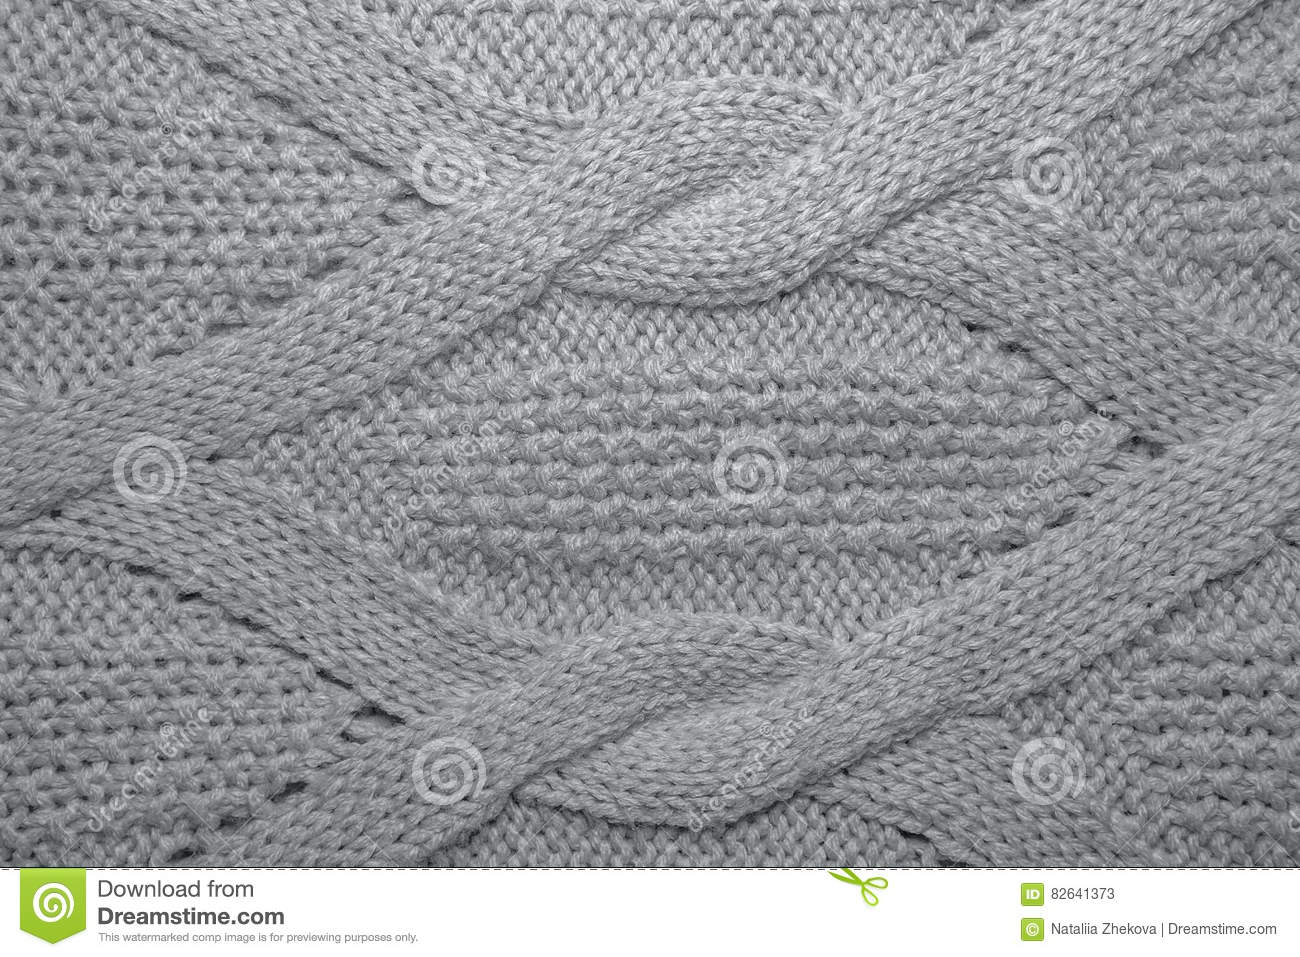 7bab1c7082d5a Knitted jersey background with a relief pattern. Pink wool sweater texture  close up